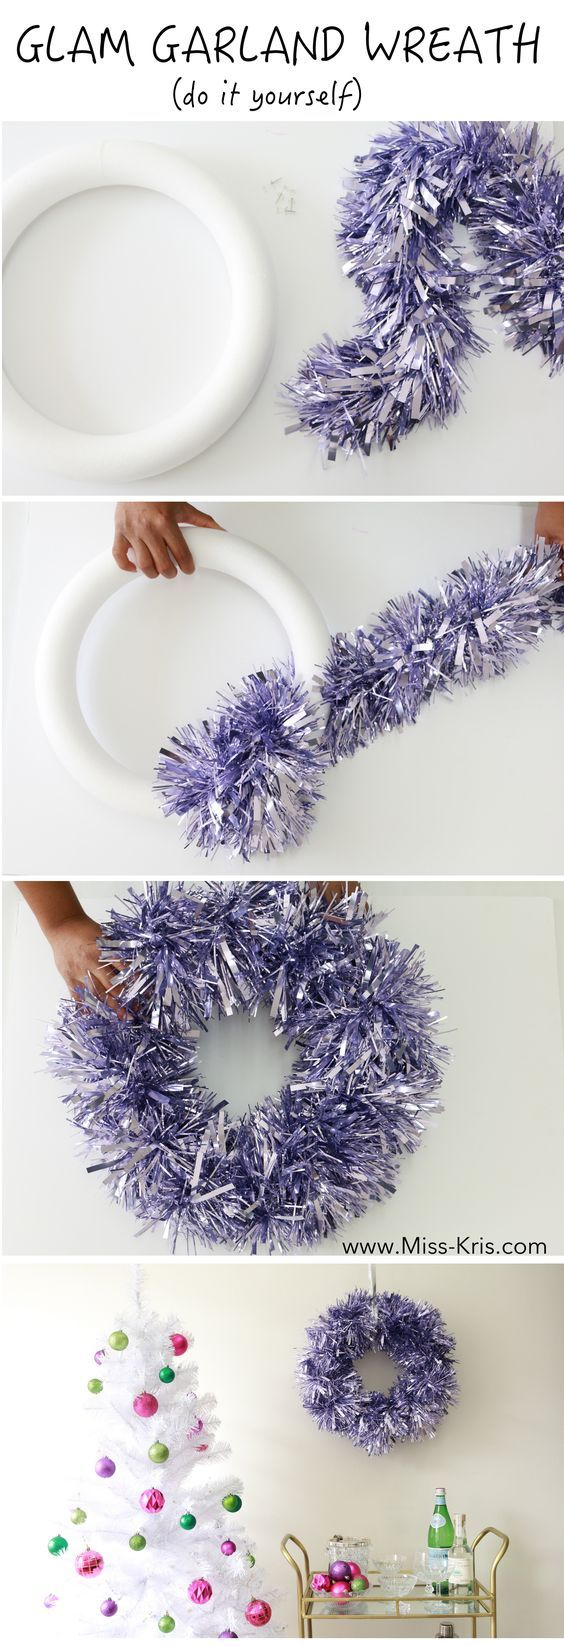 33 gorgeous diy christmas wreath ideas to decorate your holiday season diy glam garland wreath solutioingenieria